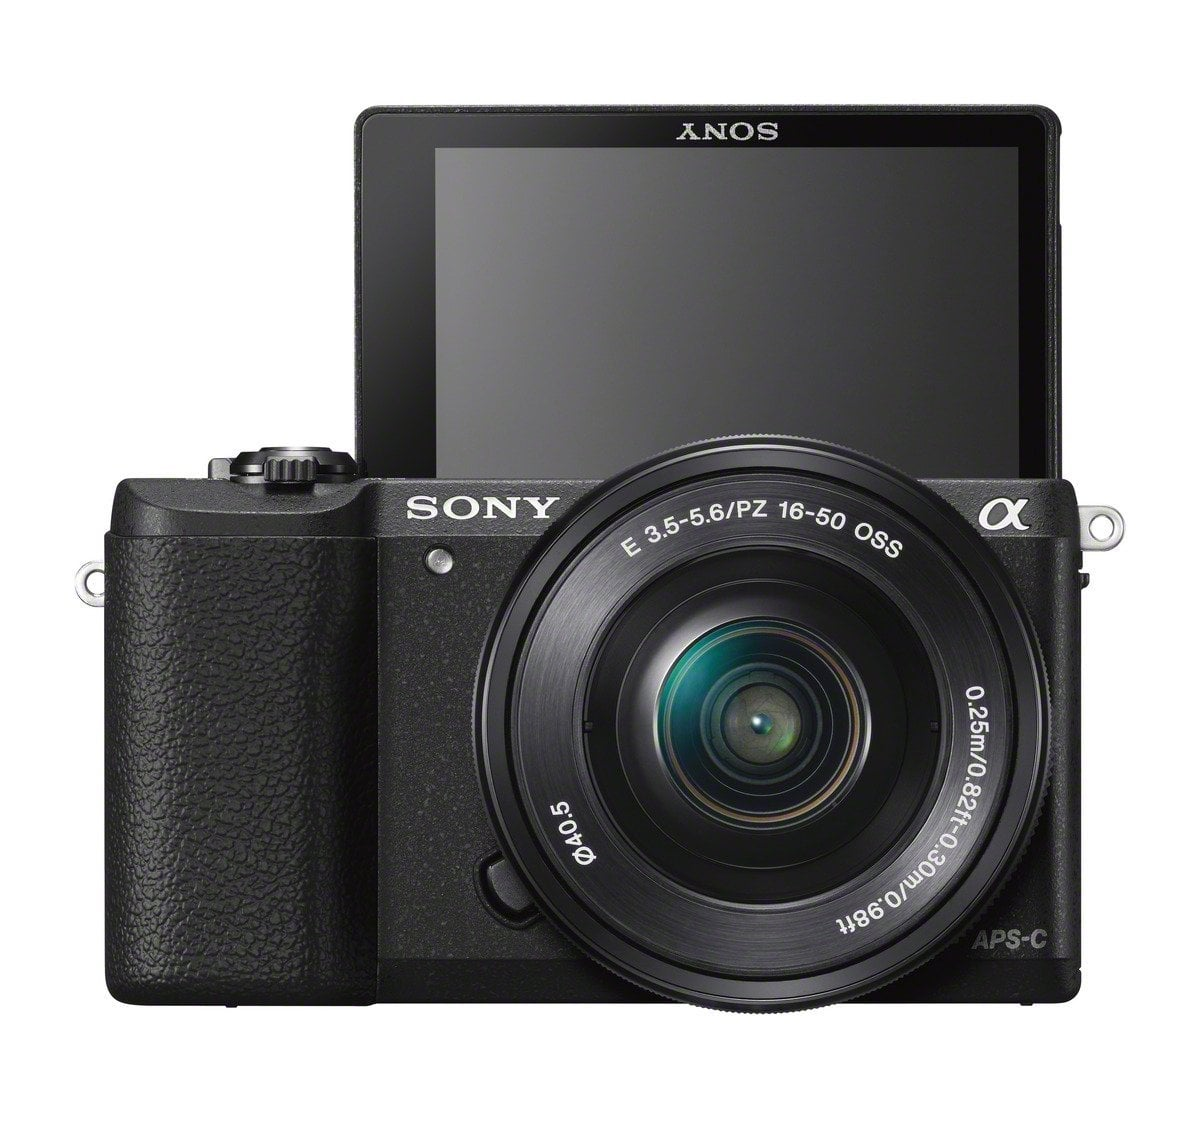 Sony a5100 Vlogging Camera Review – A Complete Buying Guide